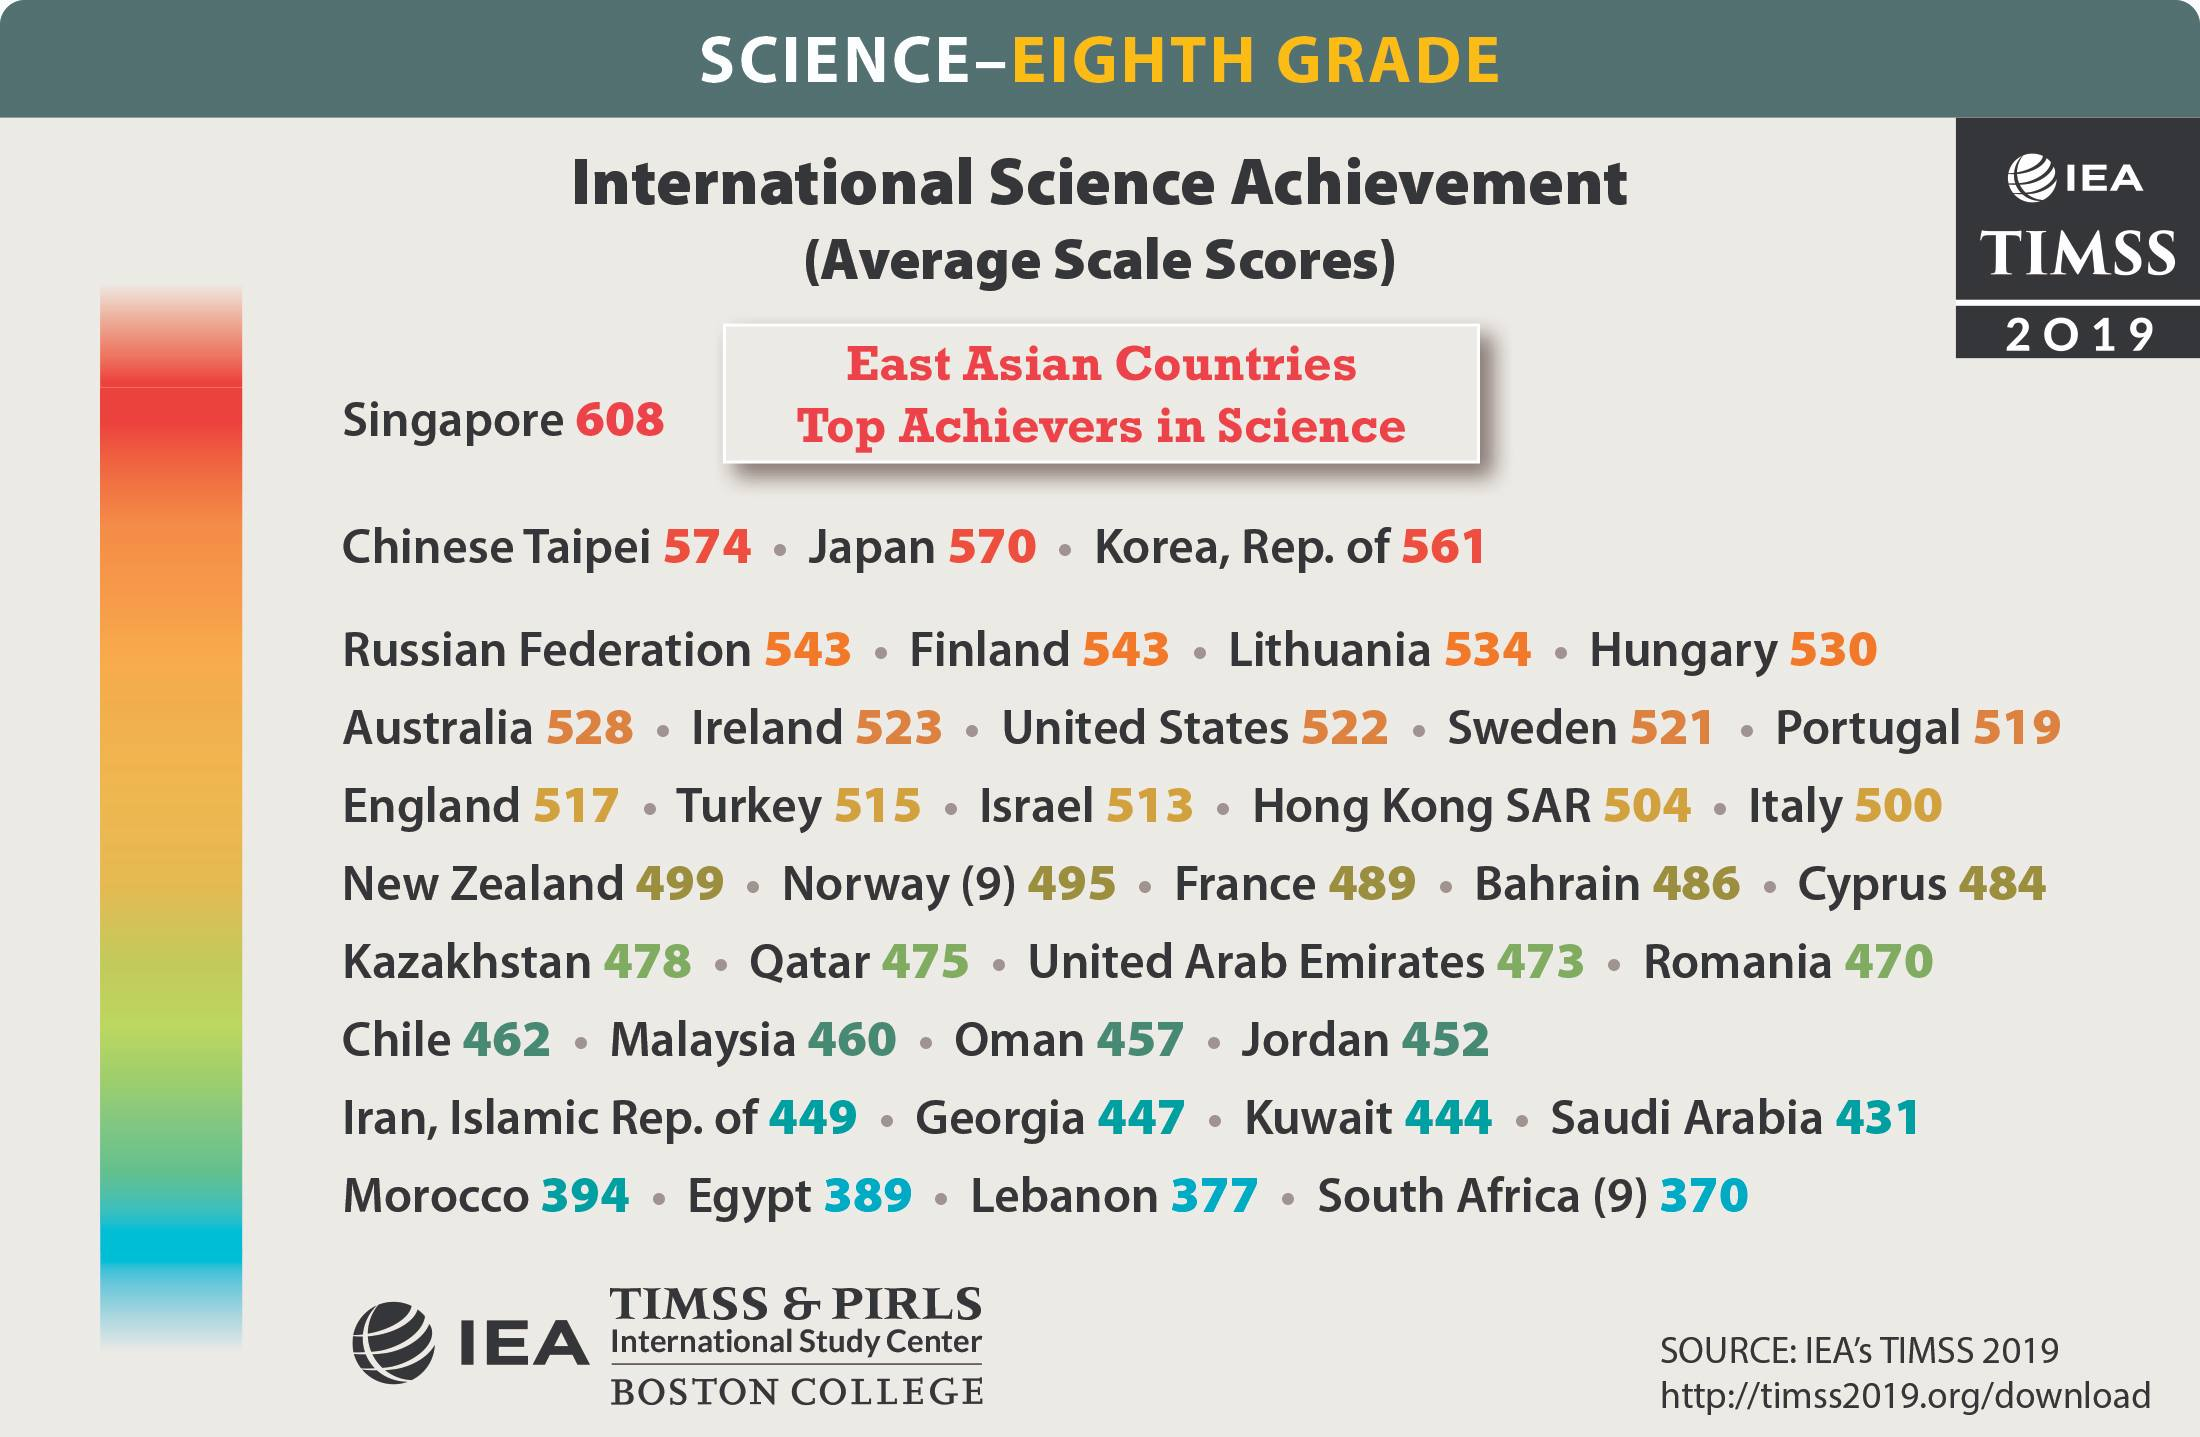 On the science scale of TIMSS, the average score of a Lebanese 8th grader is 377 points